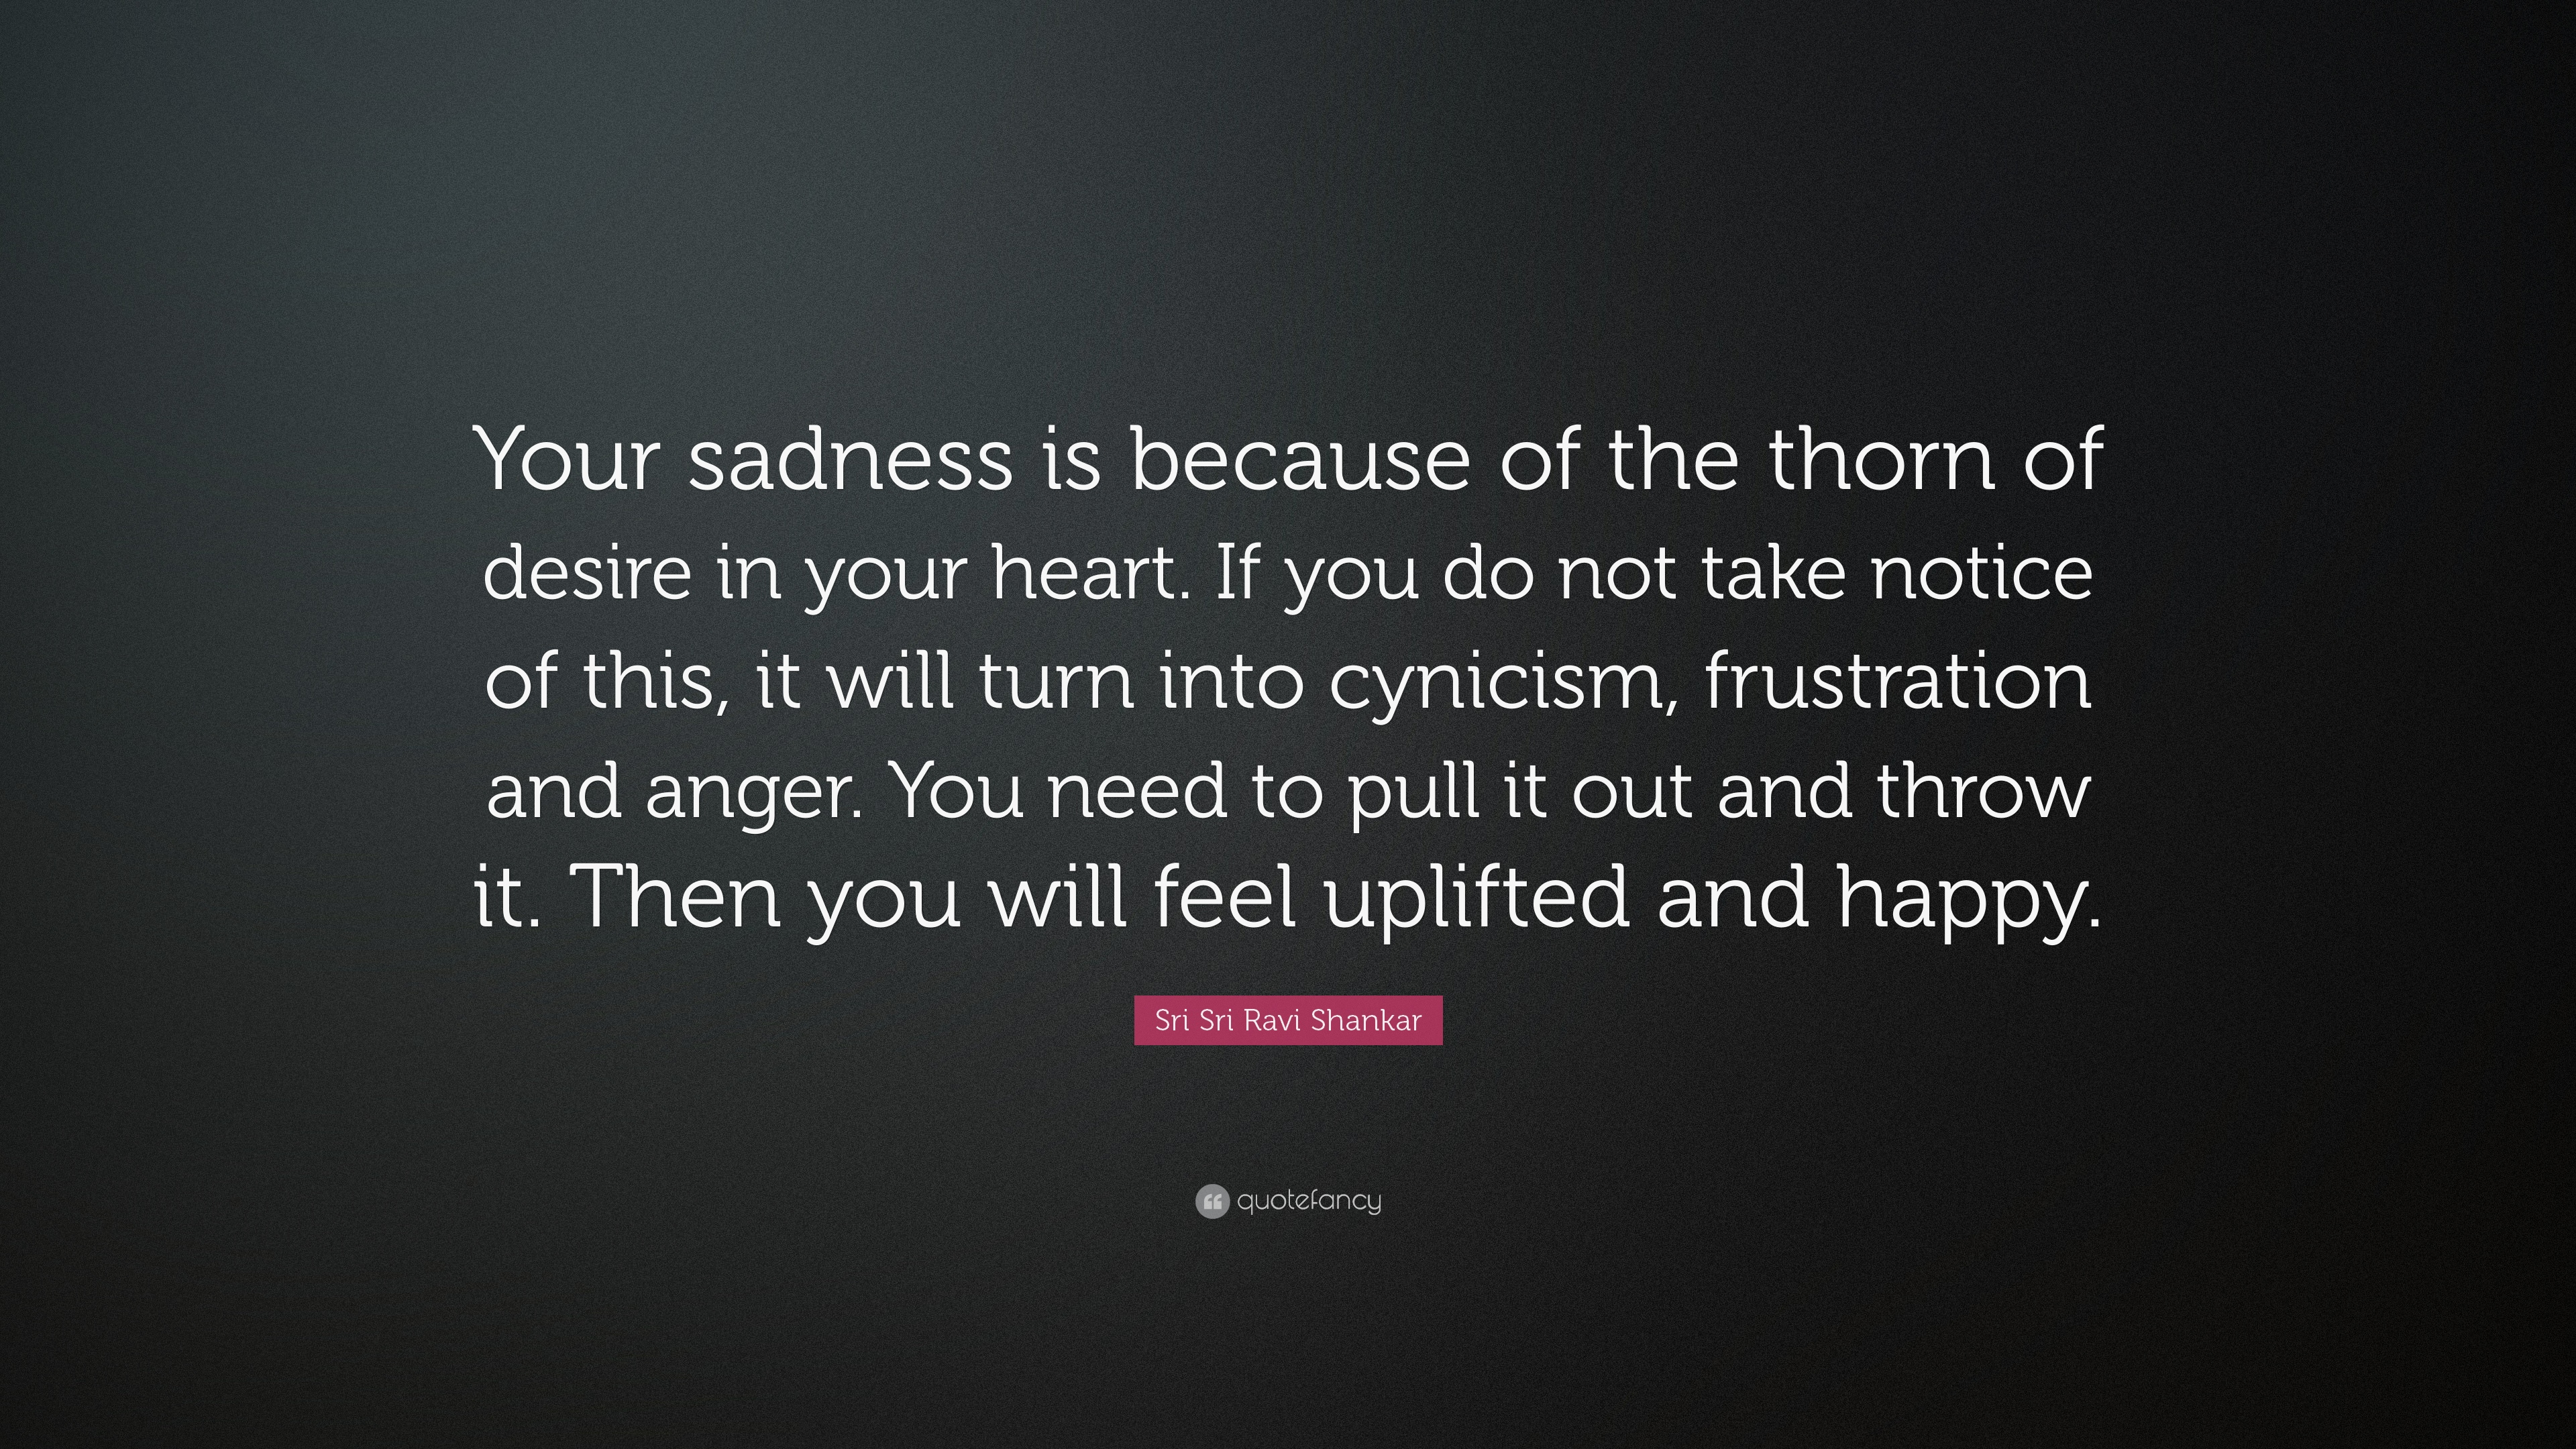 Sri Sri Ravi Shankar Quote Your Sadness Is Because Of The Thorn Of